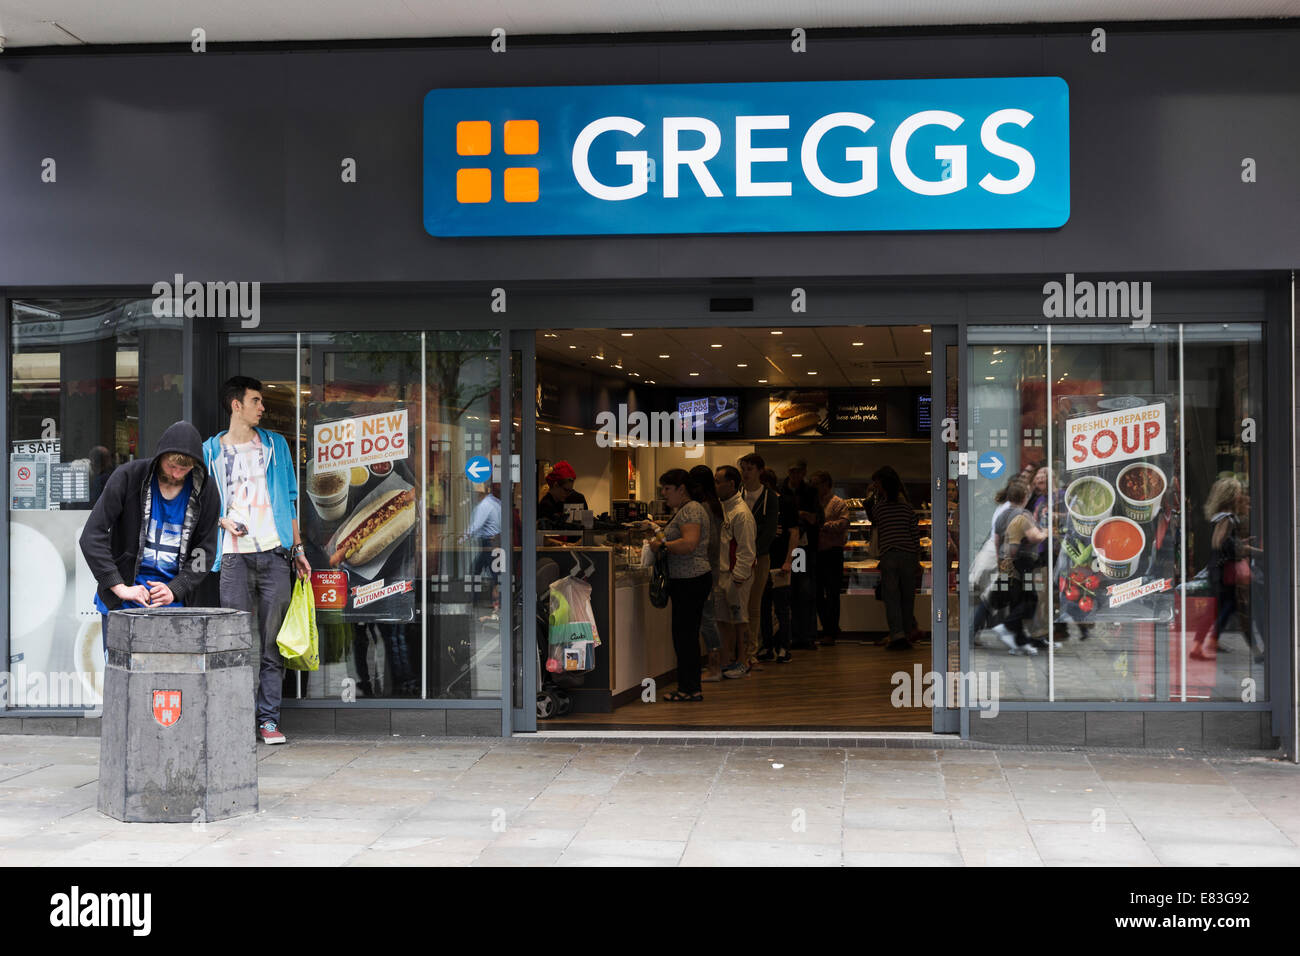 Greggs fast food outlet on Northumberland Street, Newcastle upon Tyne with customers buy food while a man searches - Stock Image